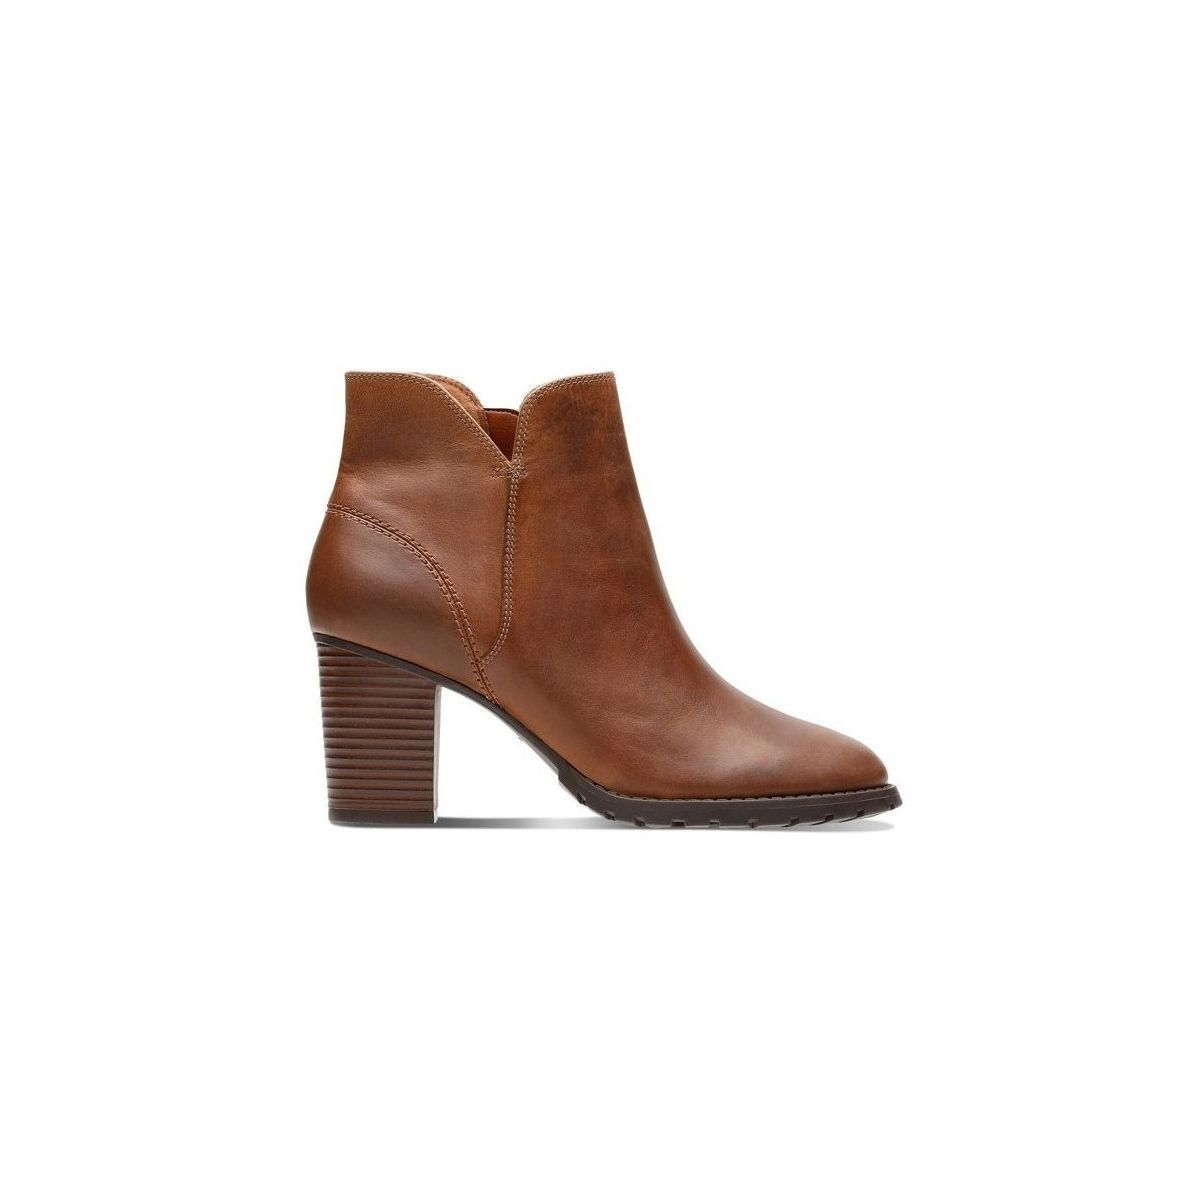 GERALYN VERONA TRISH:TAN/CUIR/TEXTILE/GOMME/Tan